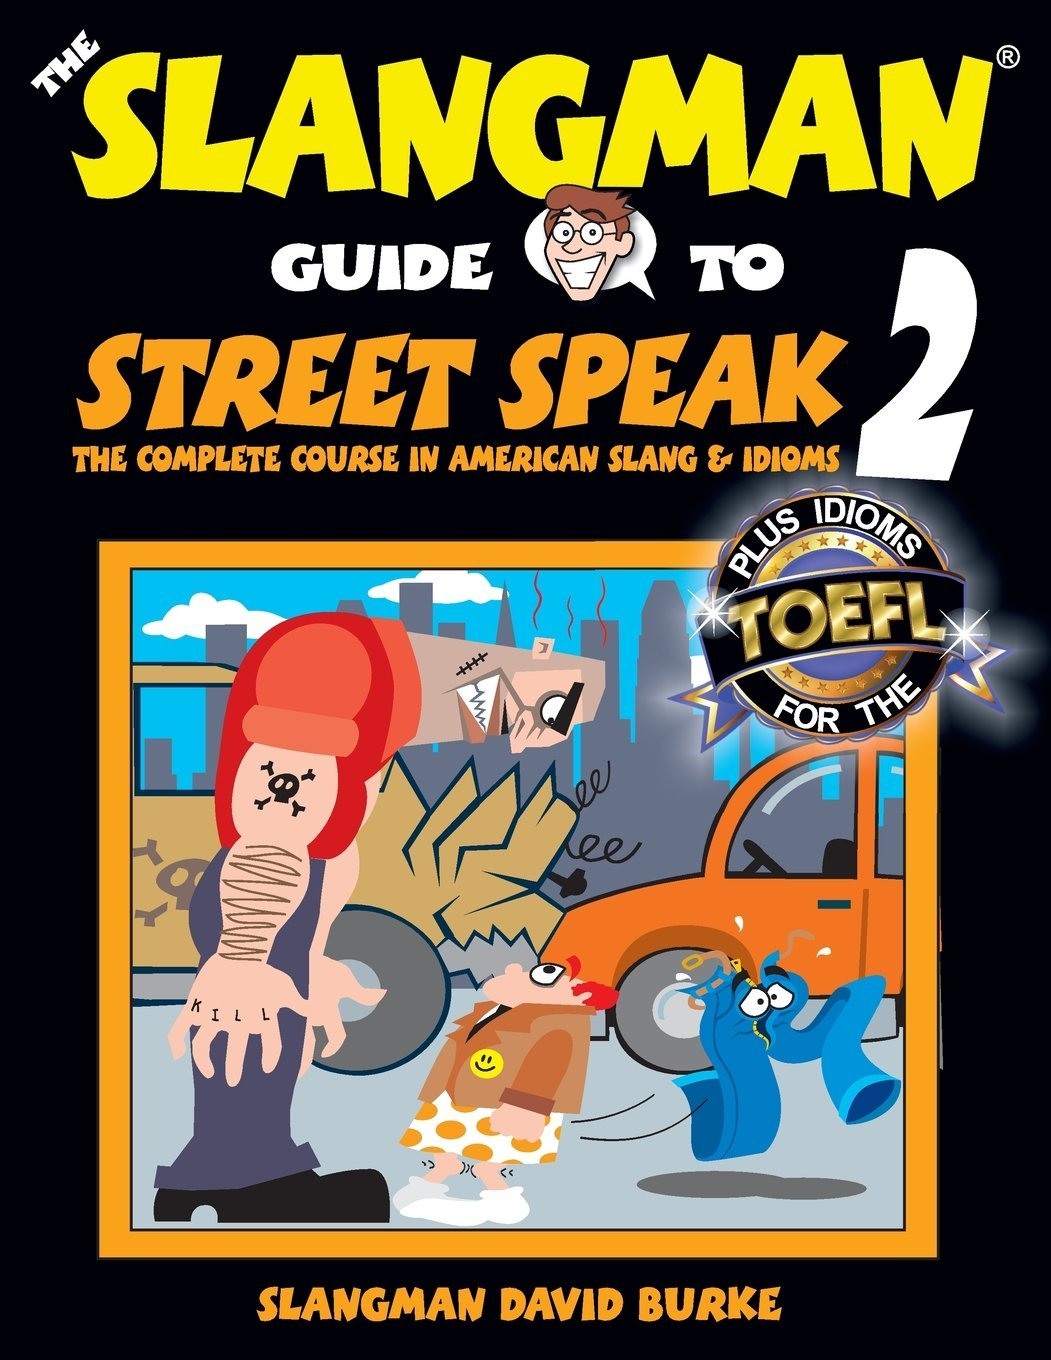 Buy The Slangman Guide to Street Speak: The Complete Course in American  Slang & Idioms: Volume 2 (Slangman Guides) Book Online at Low Prices in  India | The ...